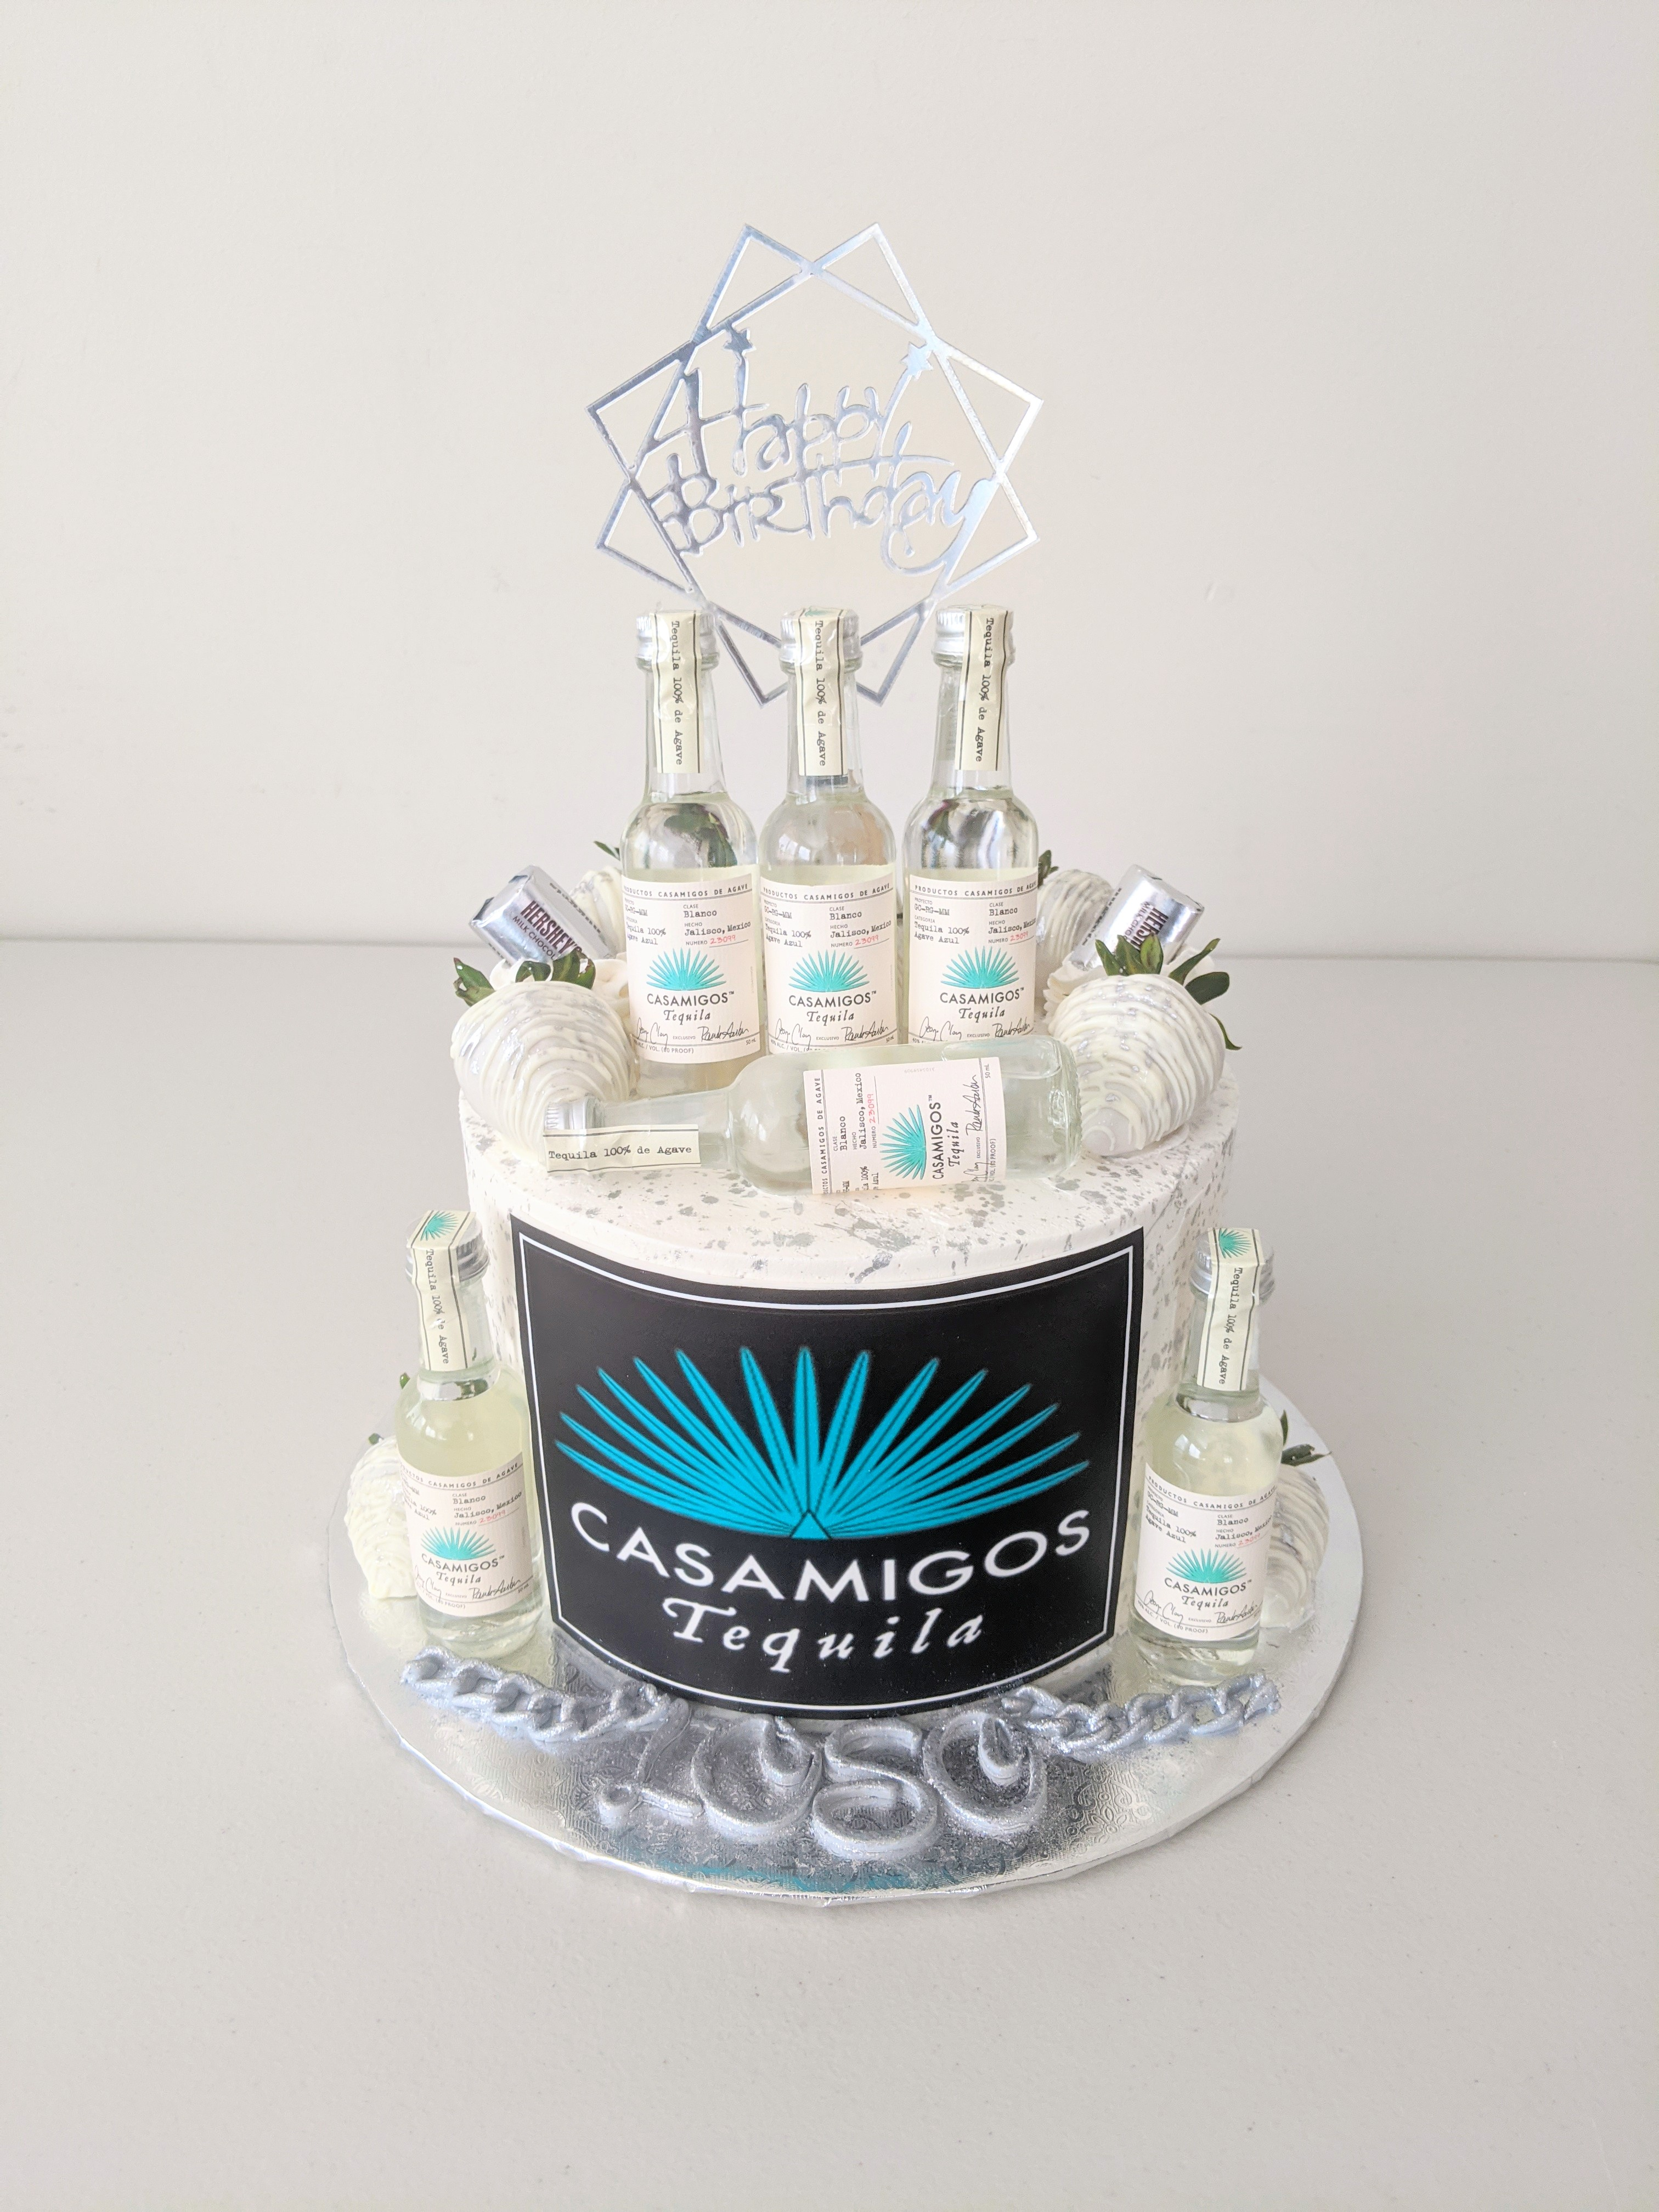 Casa Migos Adult Beverage Cake